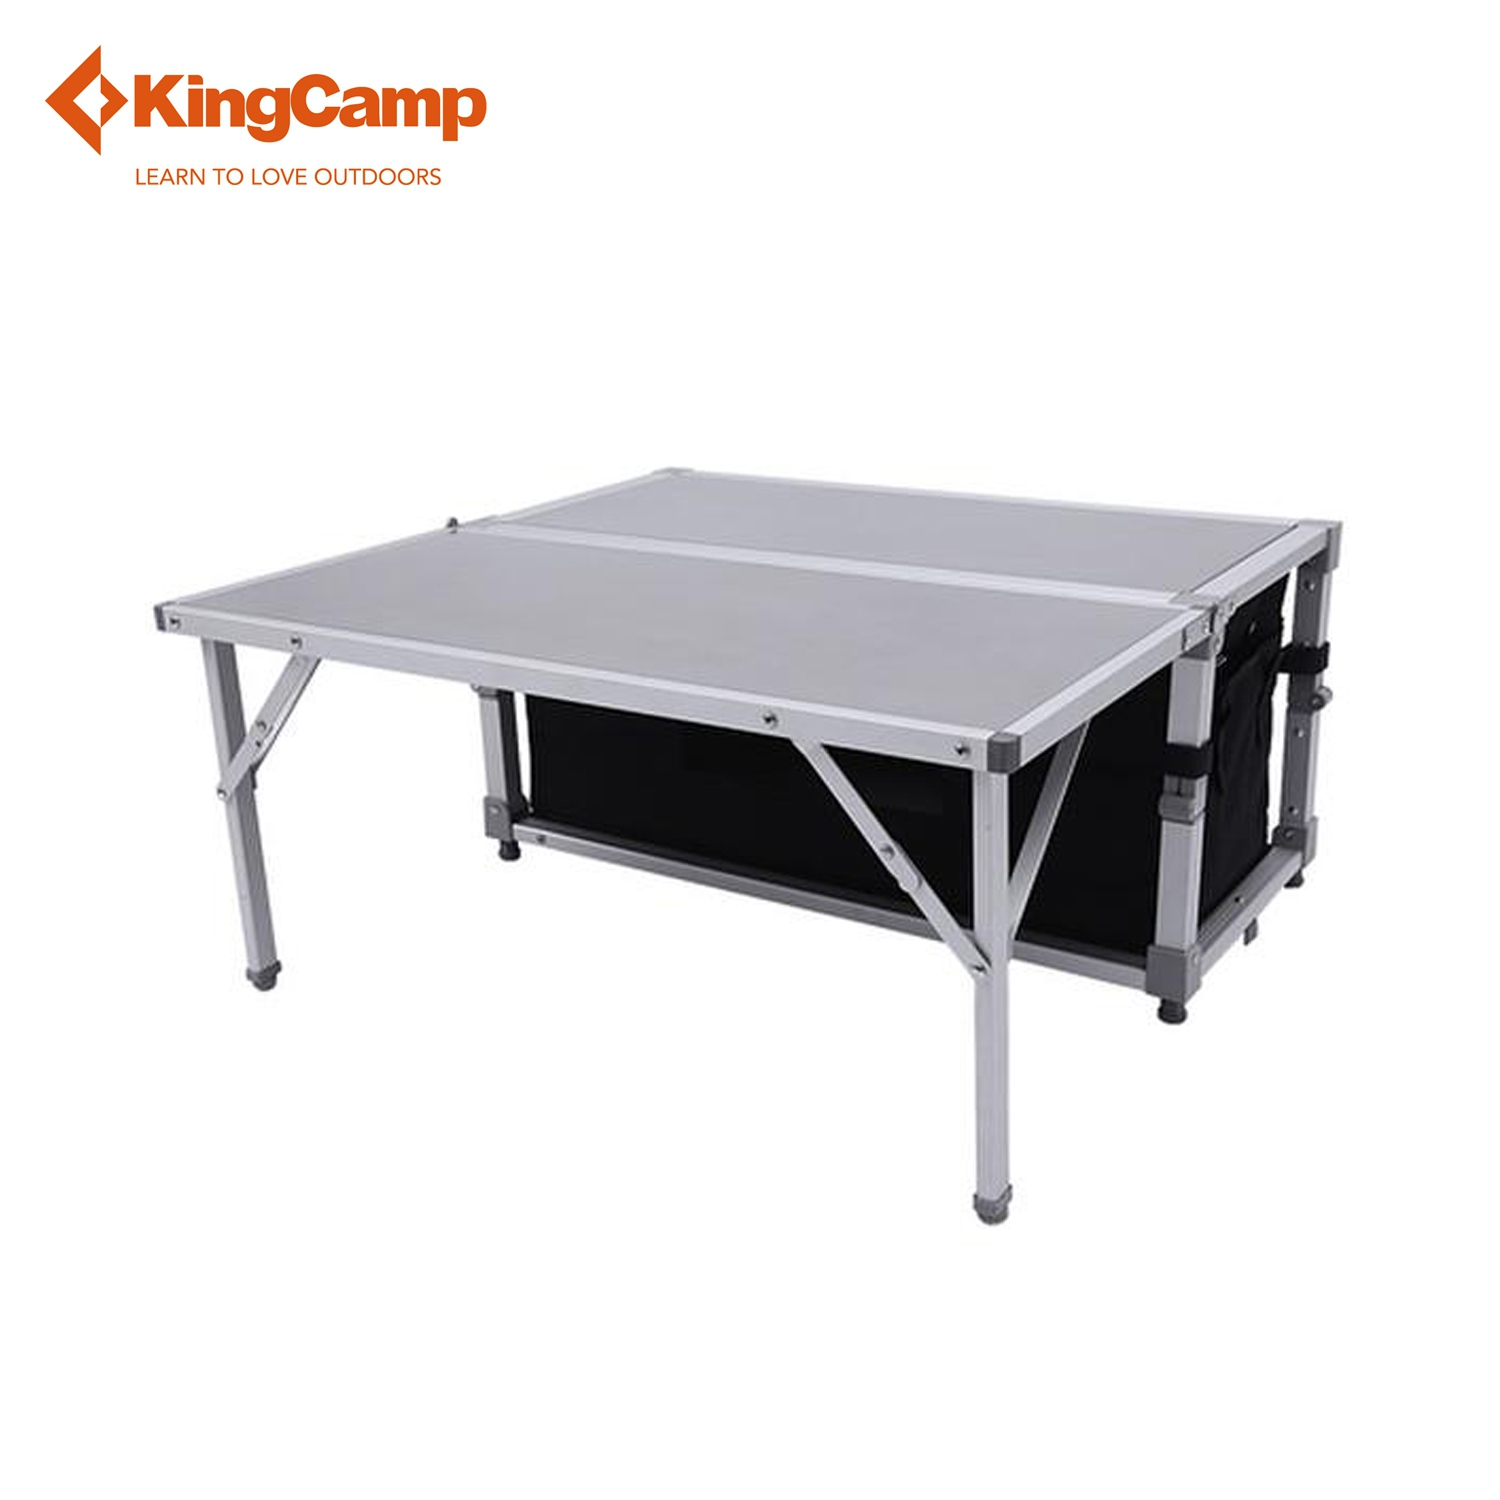 KingCamp Multifunction Portable Folding Table Multifunctional Outdoor Equipment for Outdoor Camping Picnic(China (Mainland))